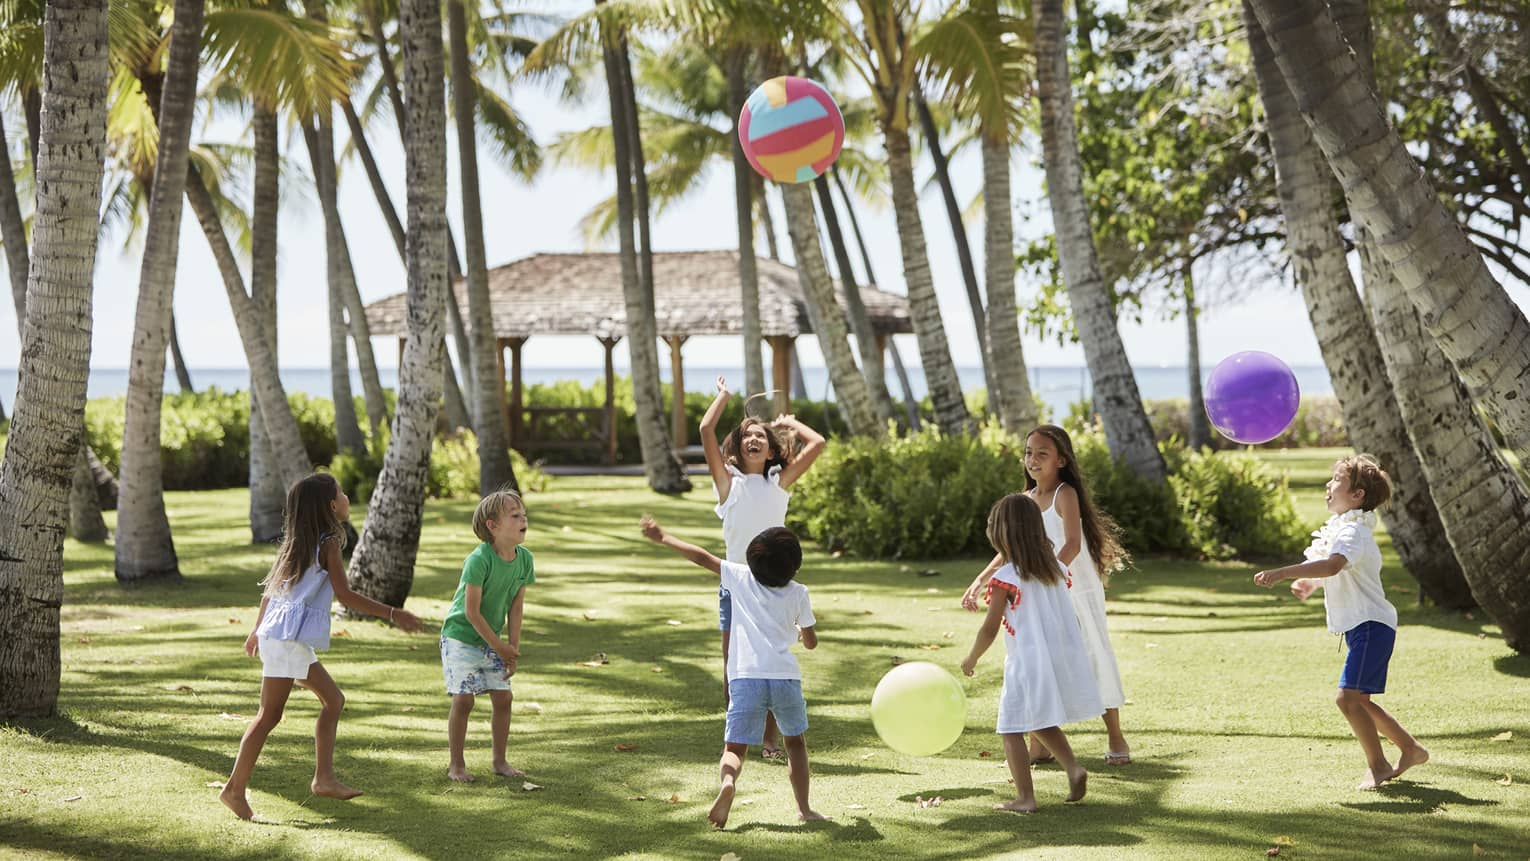 Group of children play with large colourful balls on green lawn under palm trees